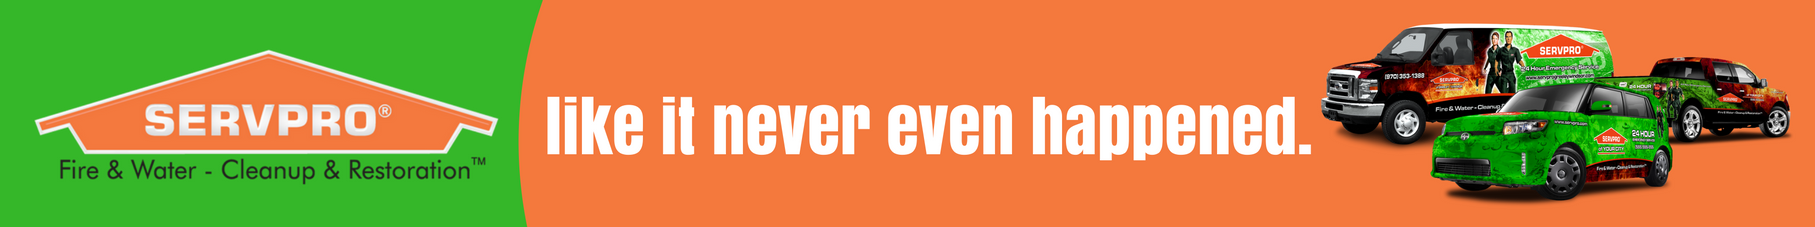 Servpro-banner-ad.png